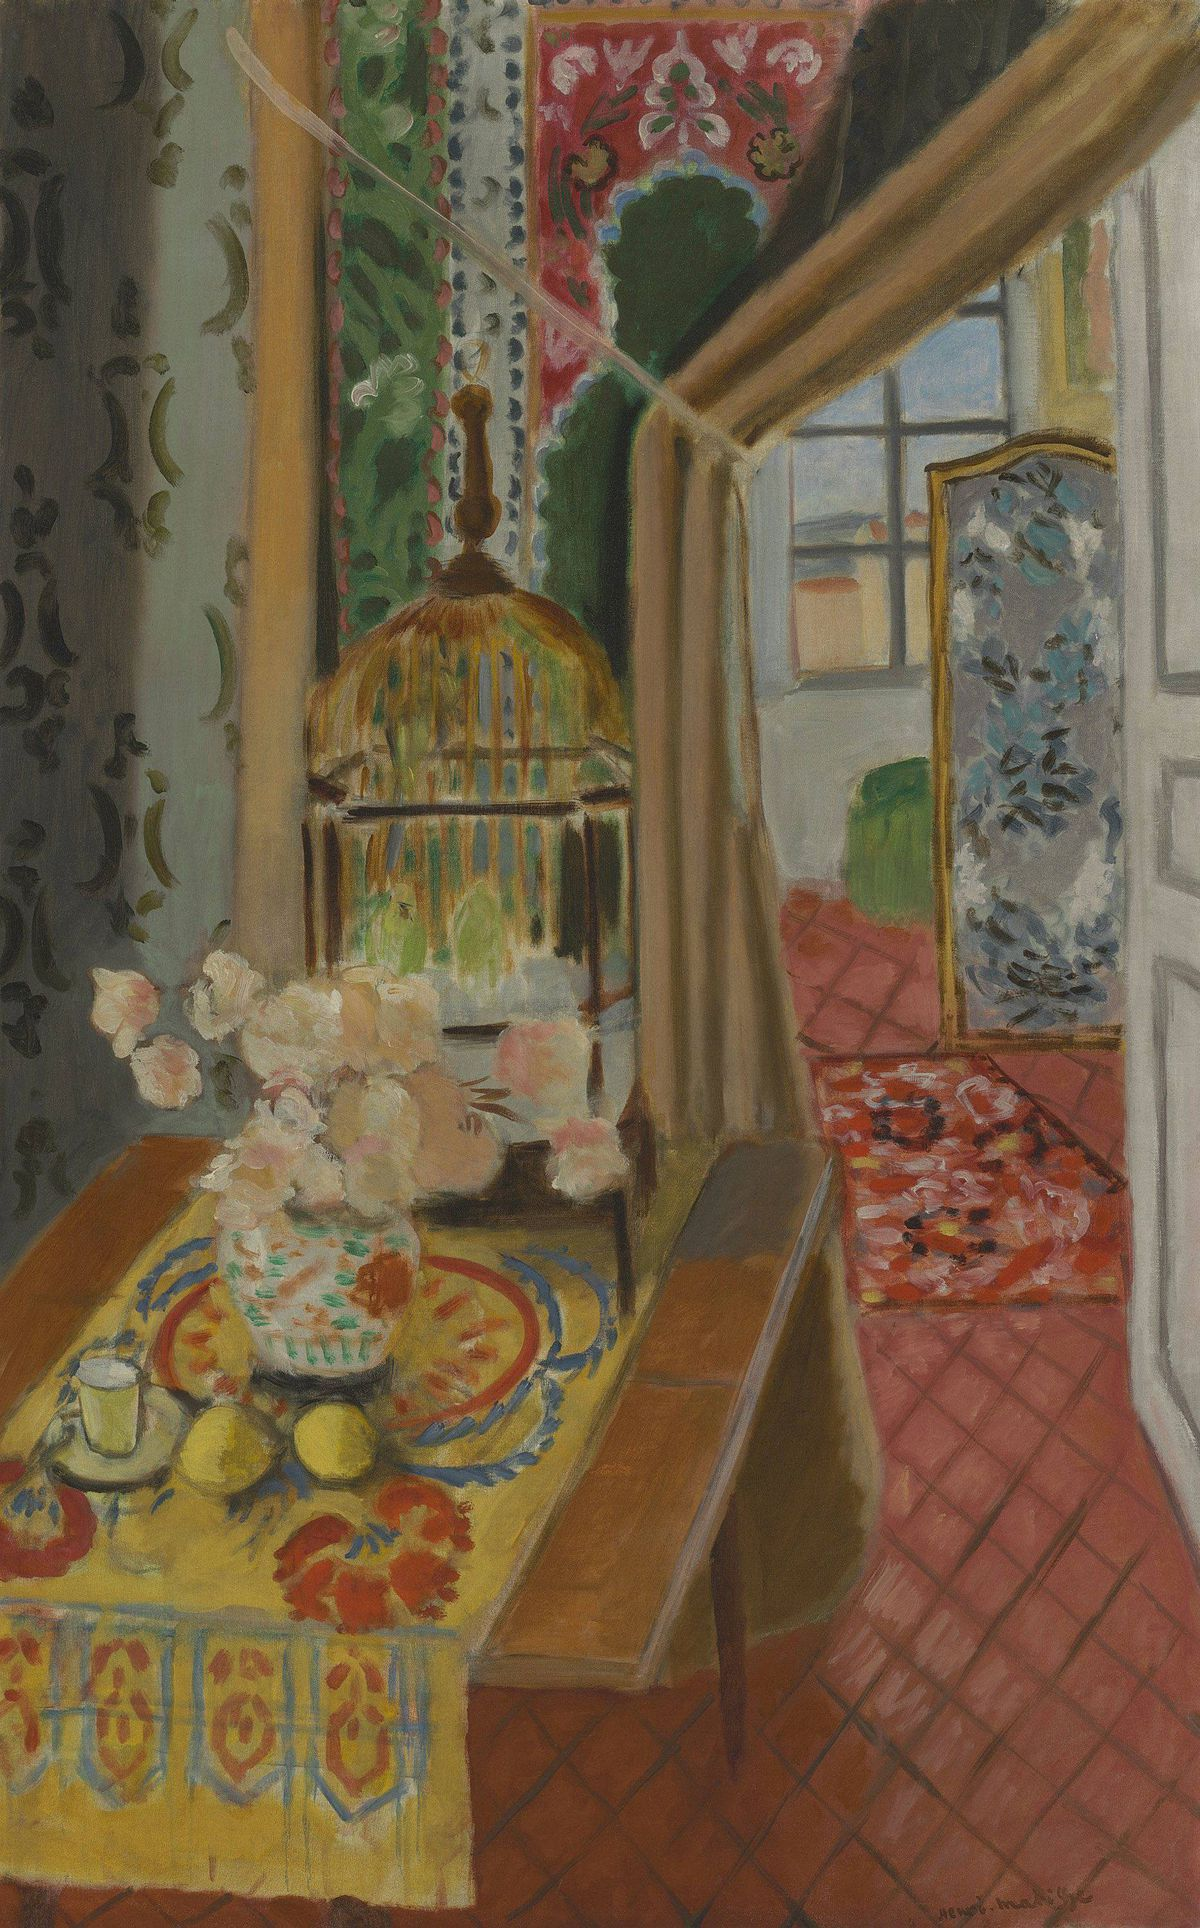 Henri Matisse, Interior, Flowers and Parakeets, 1924, oil on canvas, The Baltimore Museum of Art: The Cone Collection, formed by Dr. Claribel Cone and Miss Etta Cone of Baltimore, Maryland, BMA